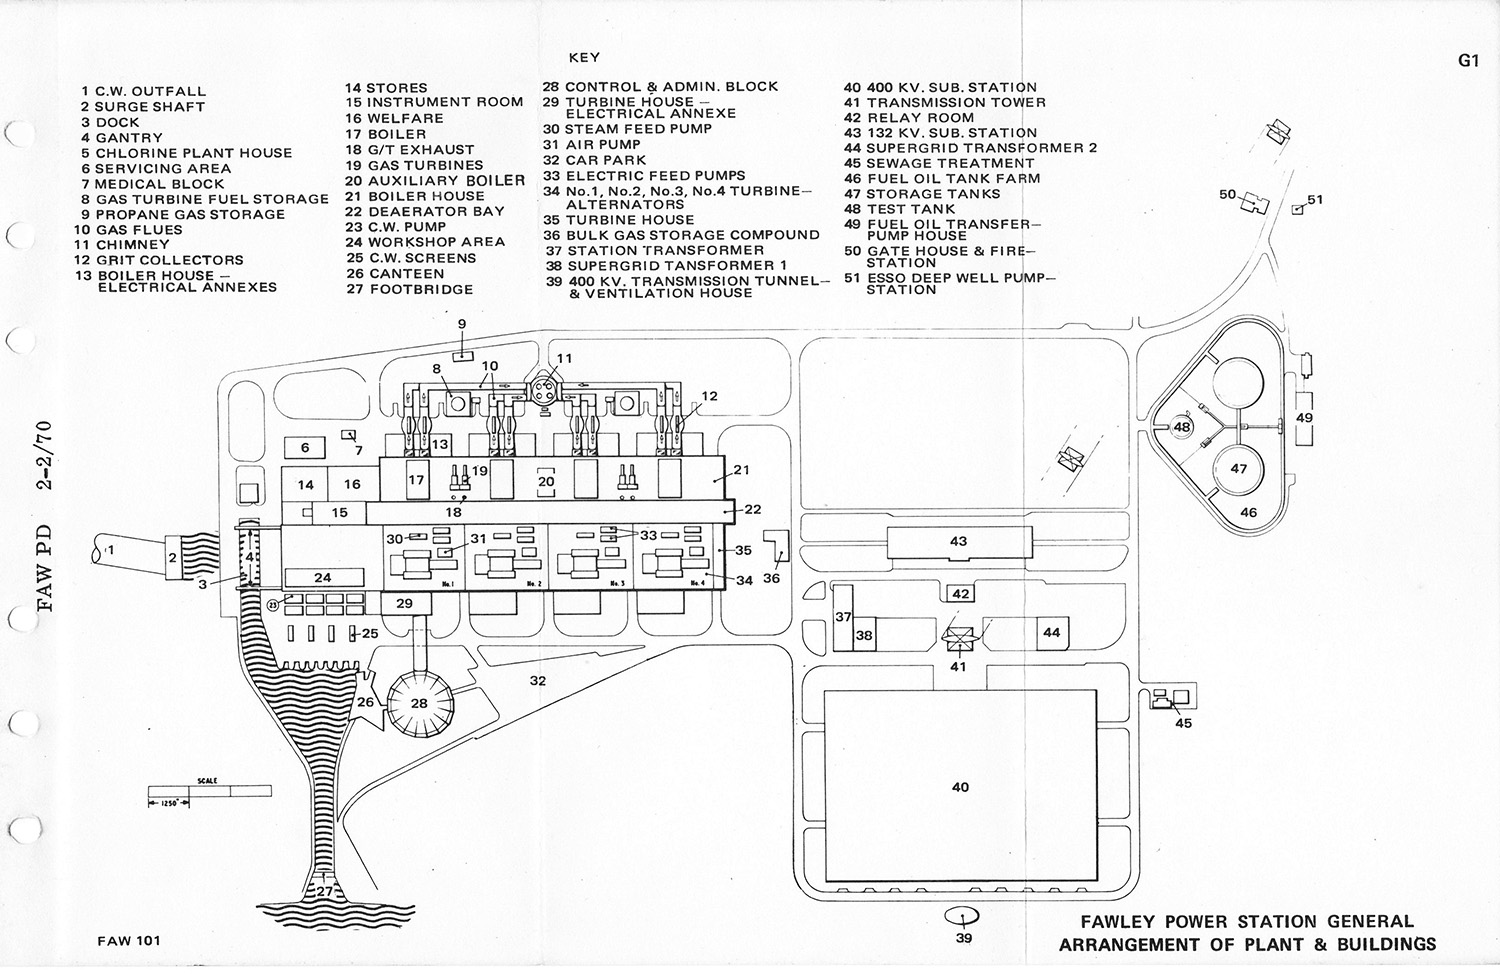 Fawley Power Station Southampton Stations Of The Uk Plant General Layout Arrangement And Buildings From Details Handbook